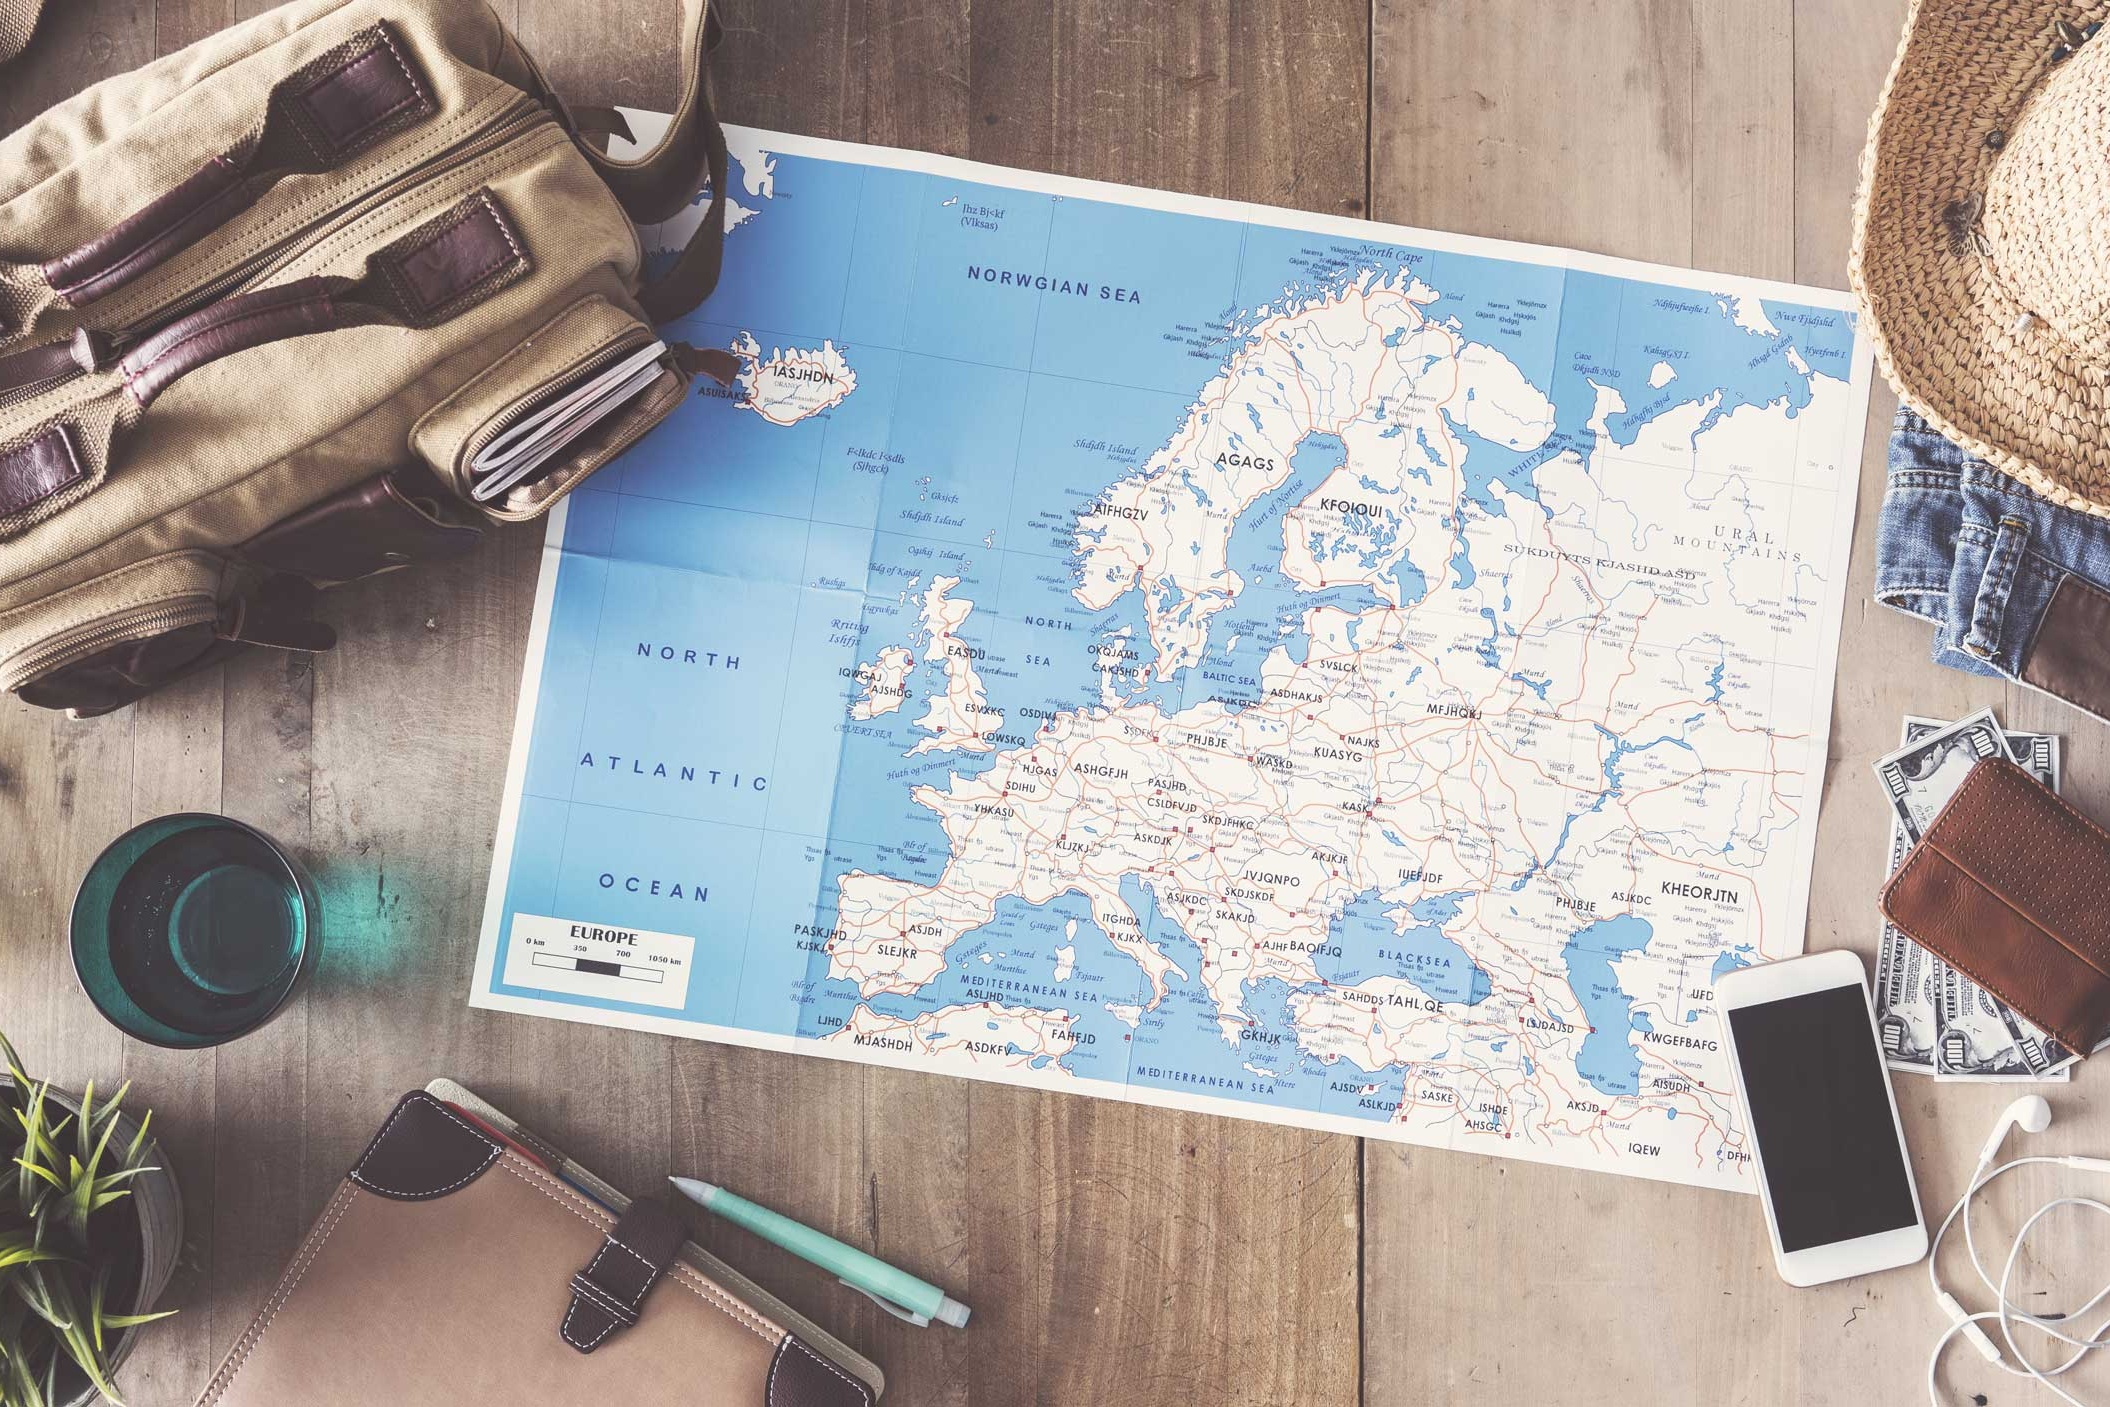 What To Know About Travel Nursing - Per diem assignments, travel reimbursements, housing accommodations - there's a lot to know before your relocation. We're here to make it easy.